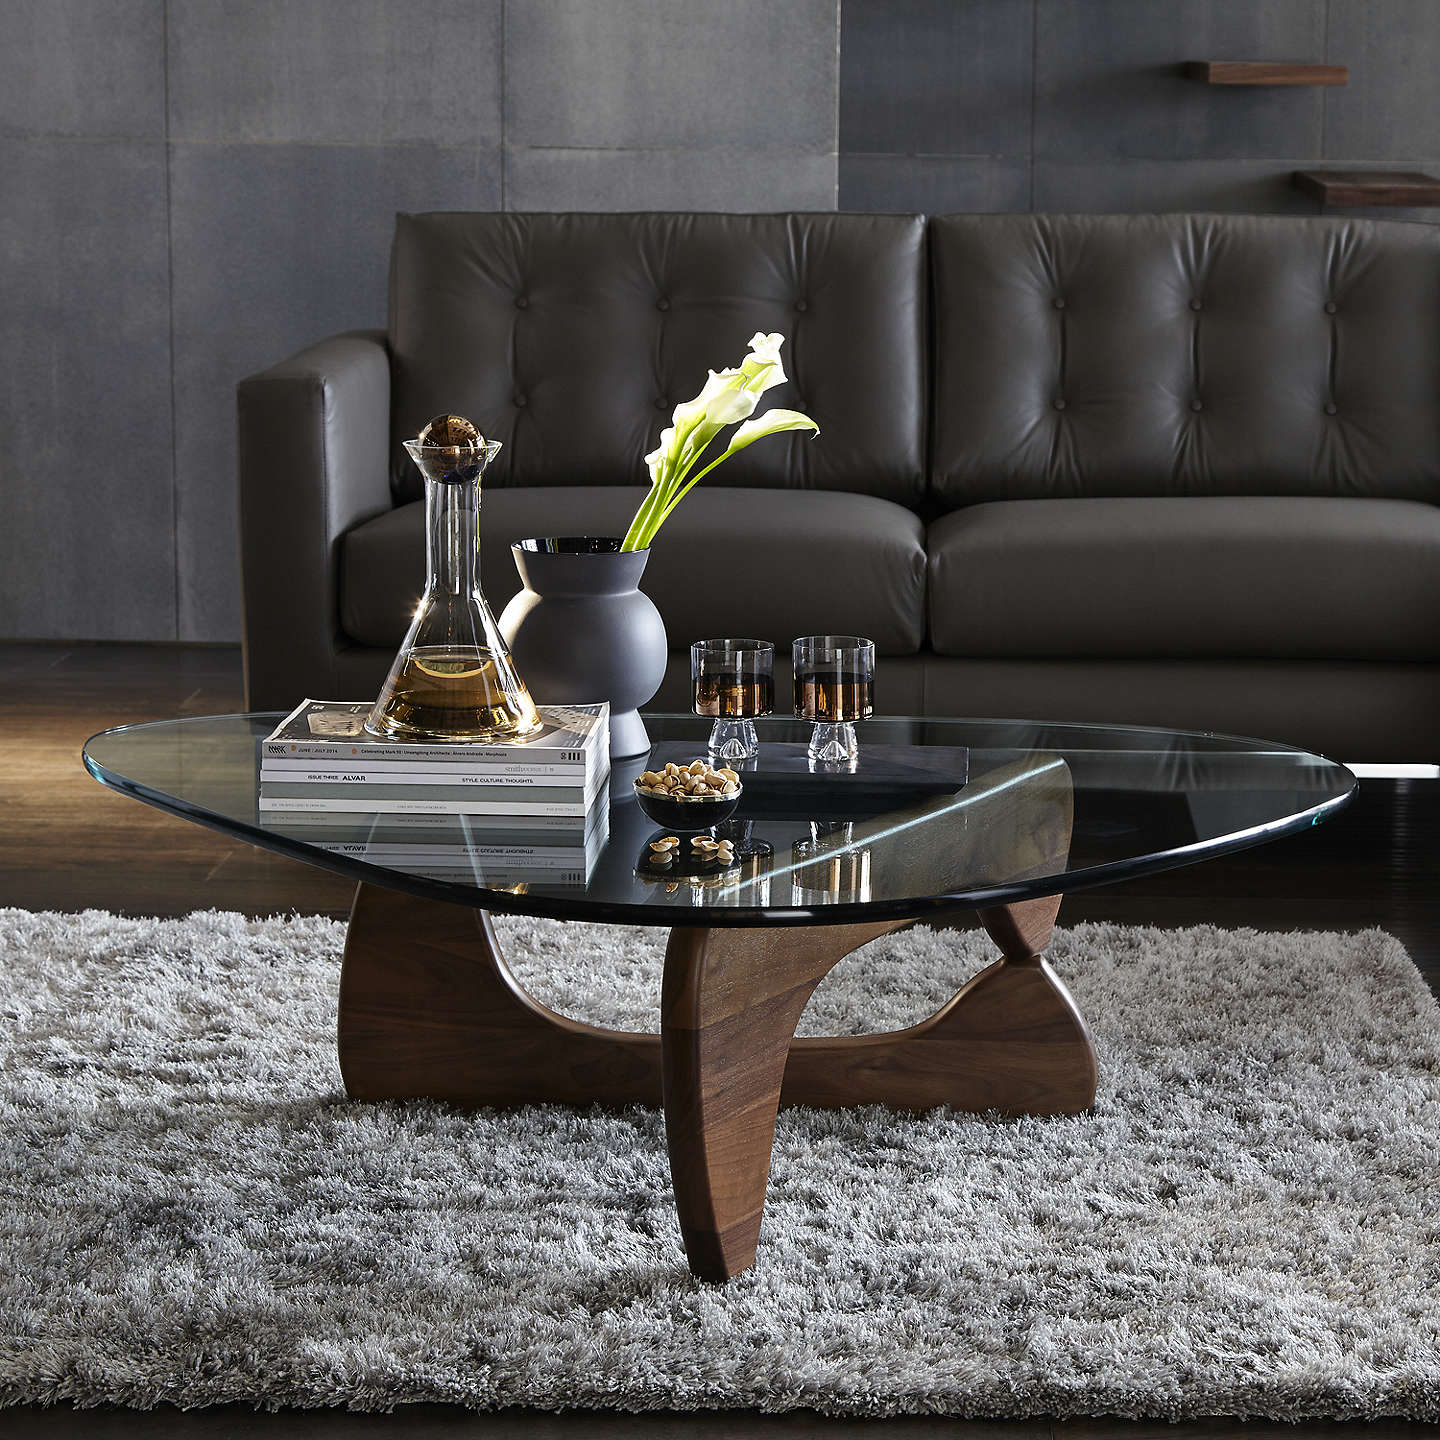 Vitra noguchi coffee table walnut at john lewis - Table basse noguchi ...